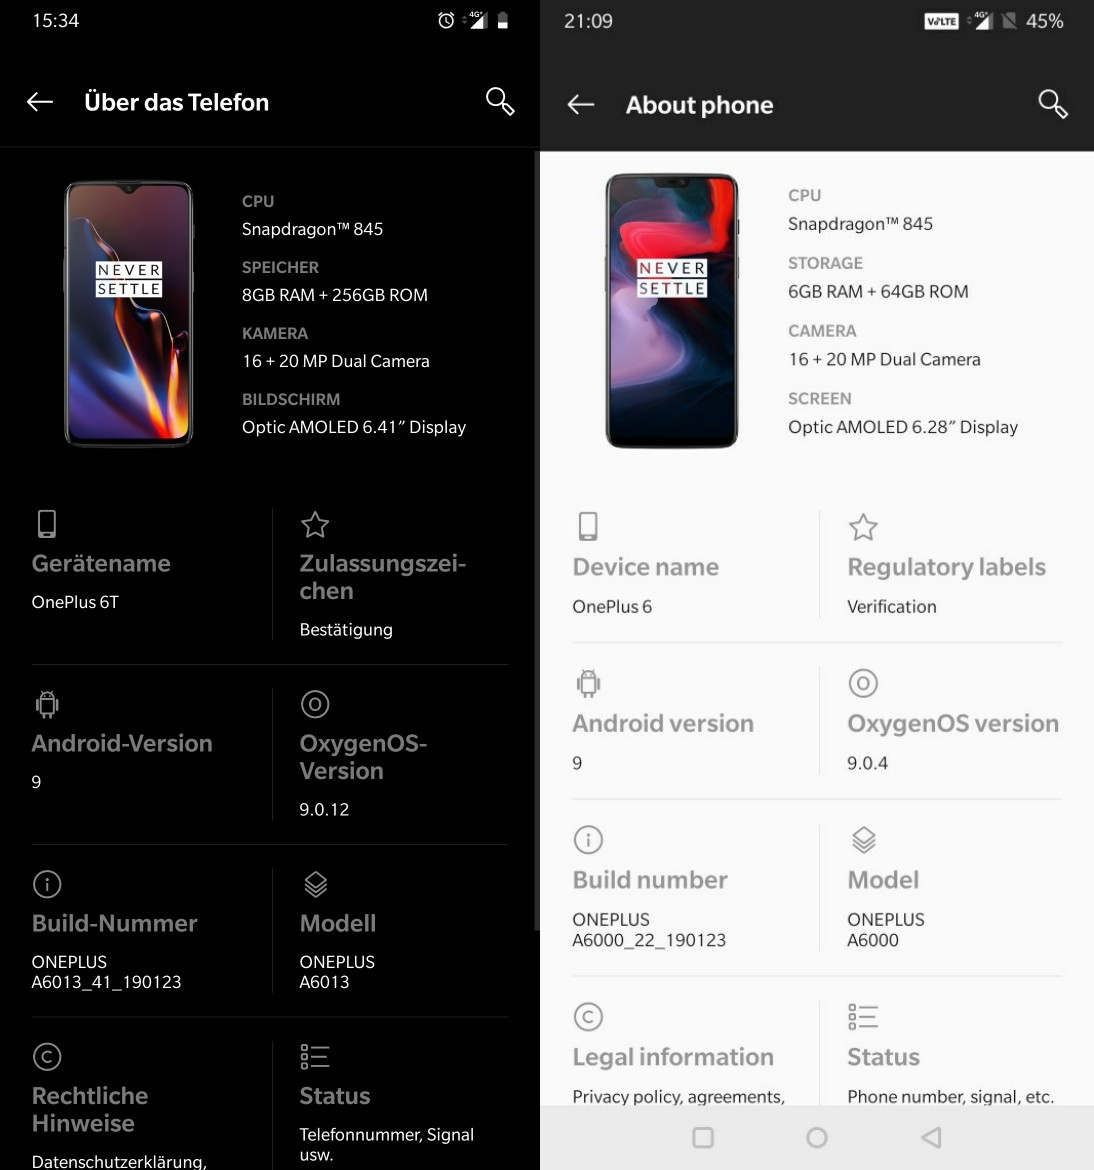 OnePlus 6T and OnePlus 6 update